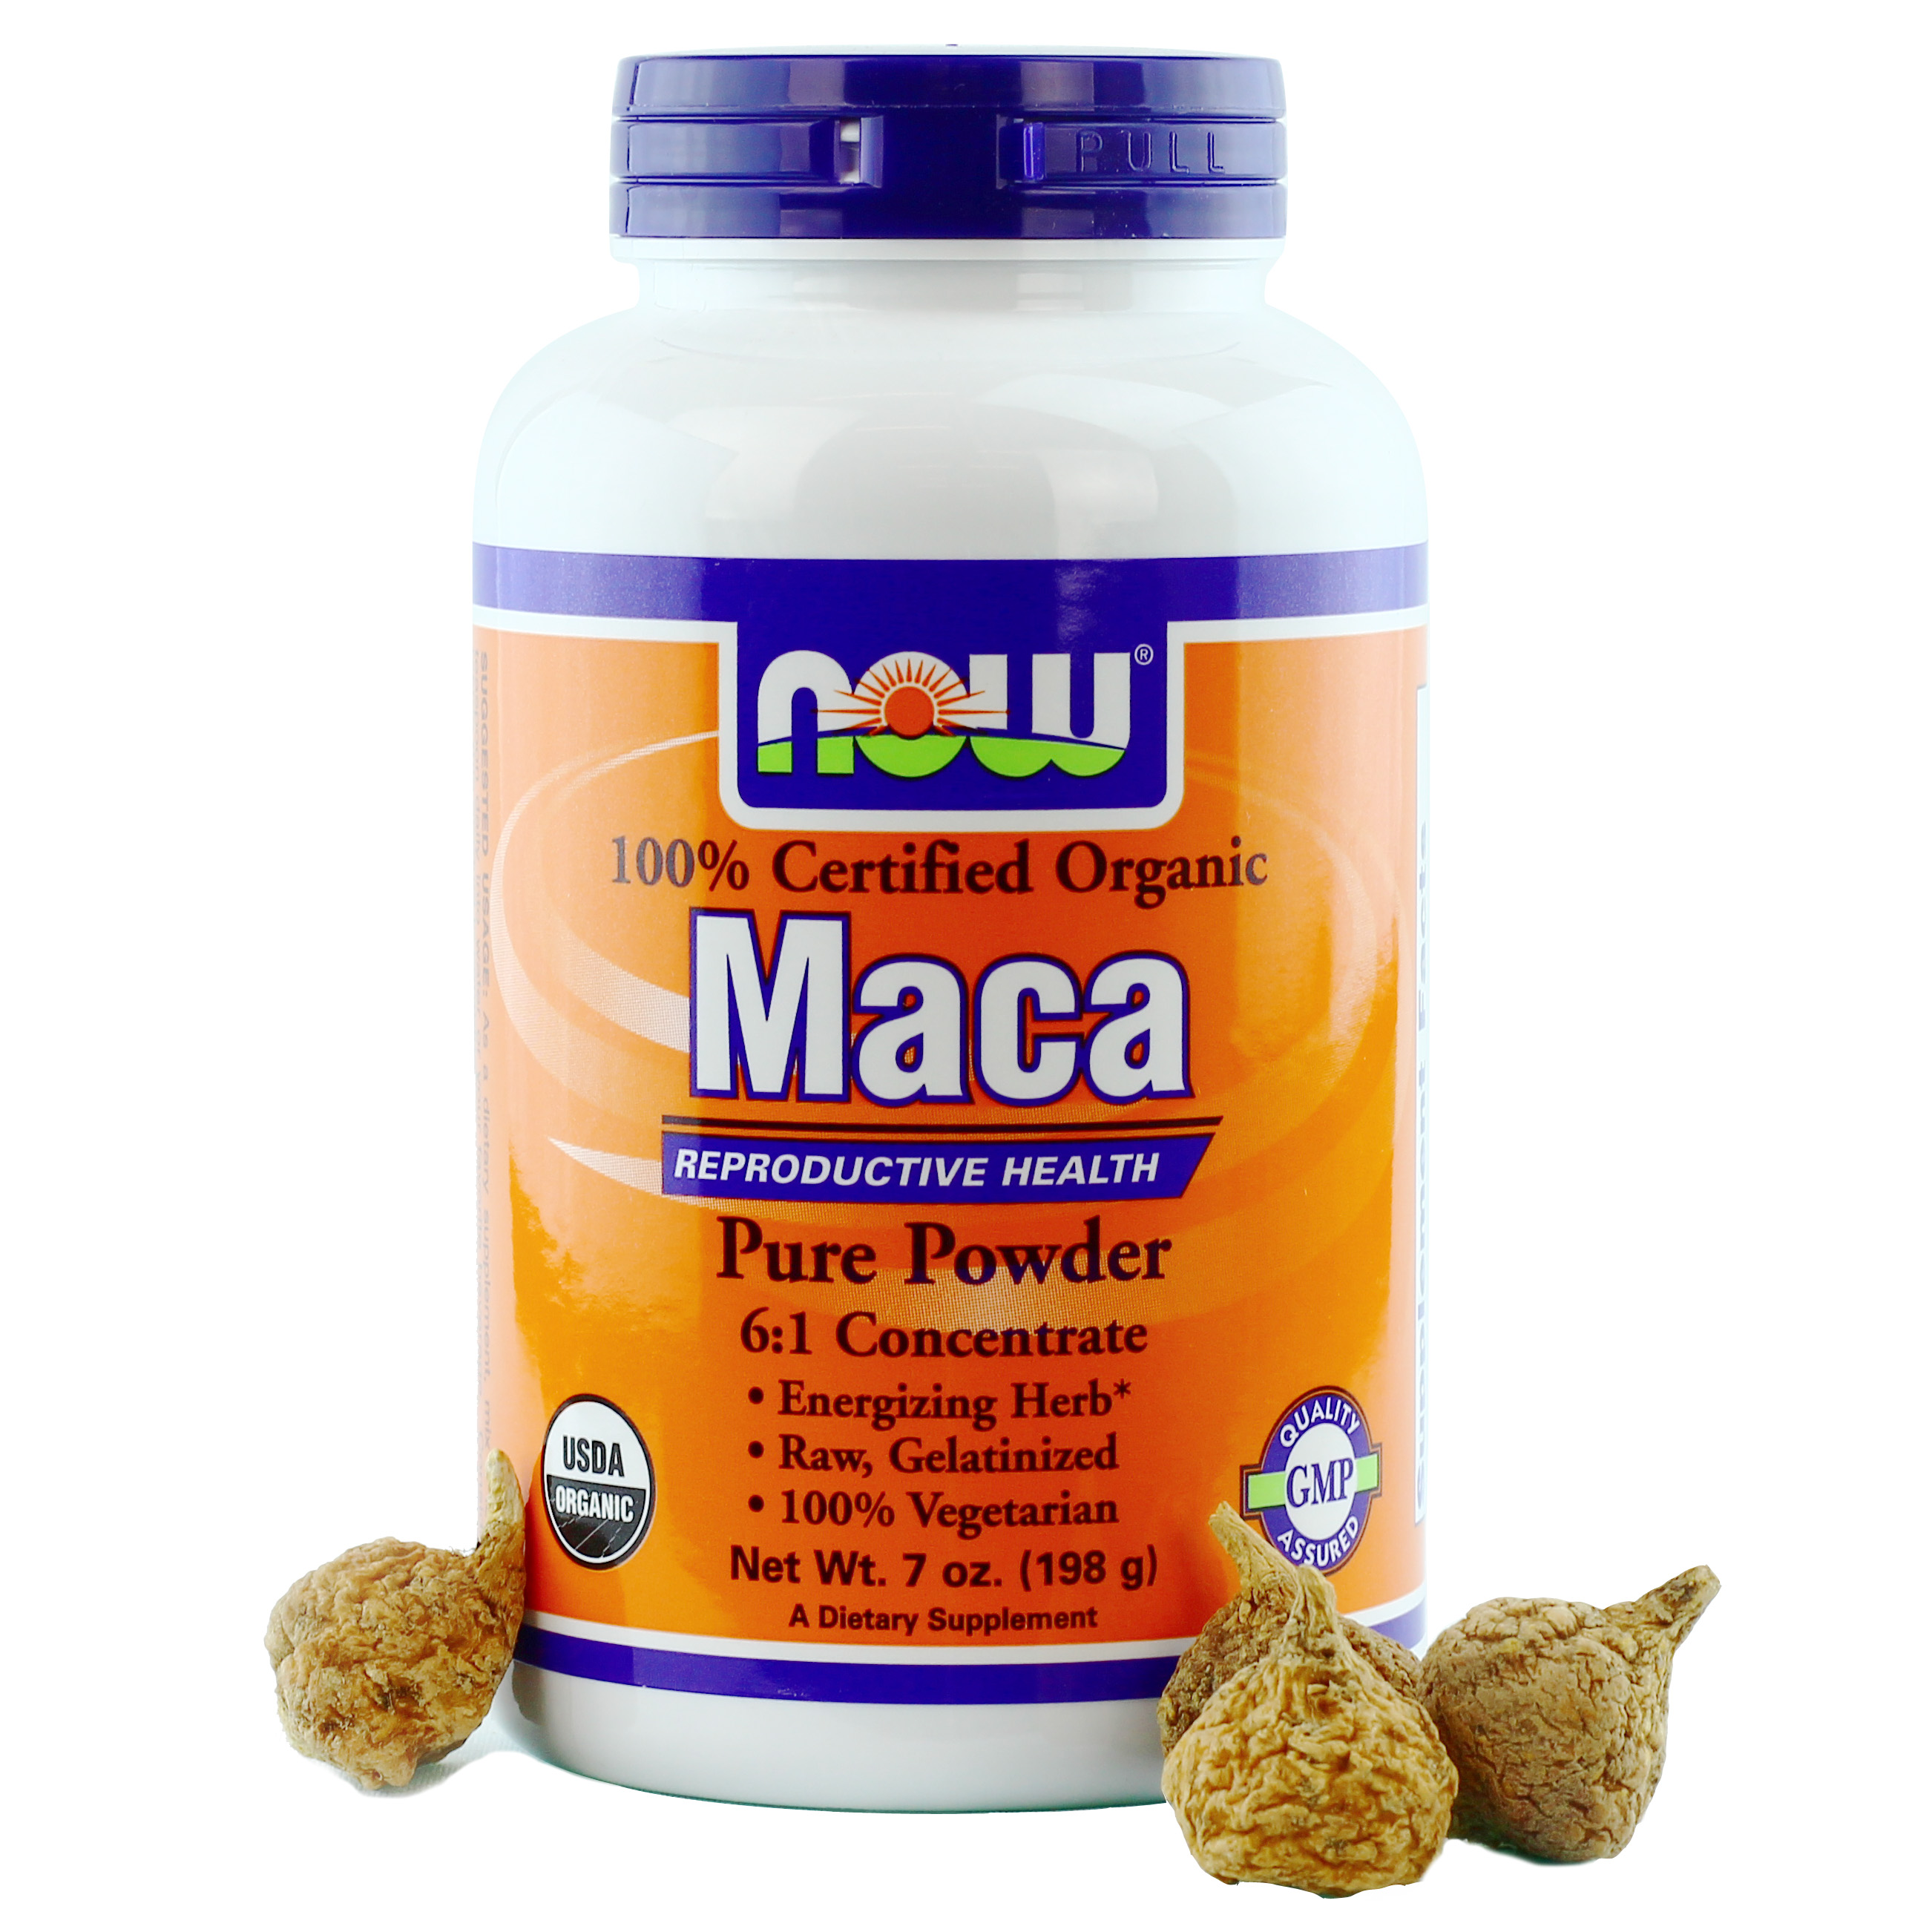 NOW® Maca Organic Pure Powder - 7 oz.